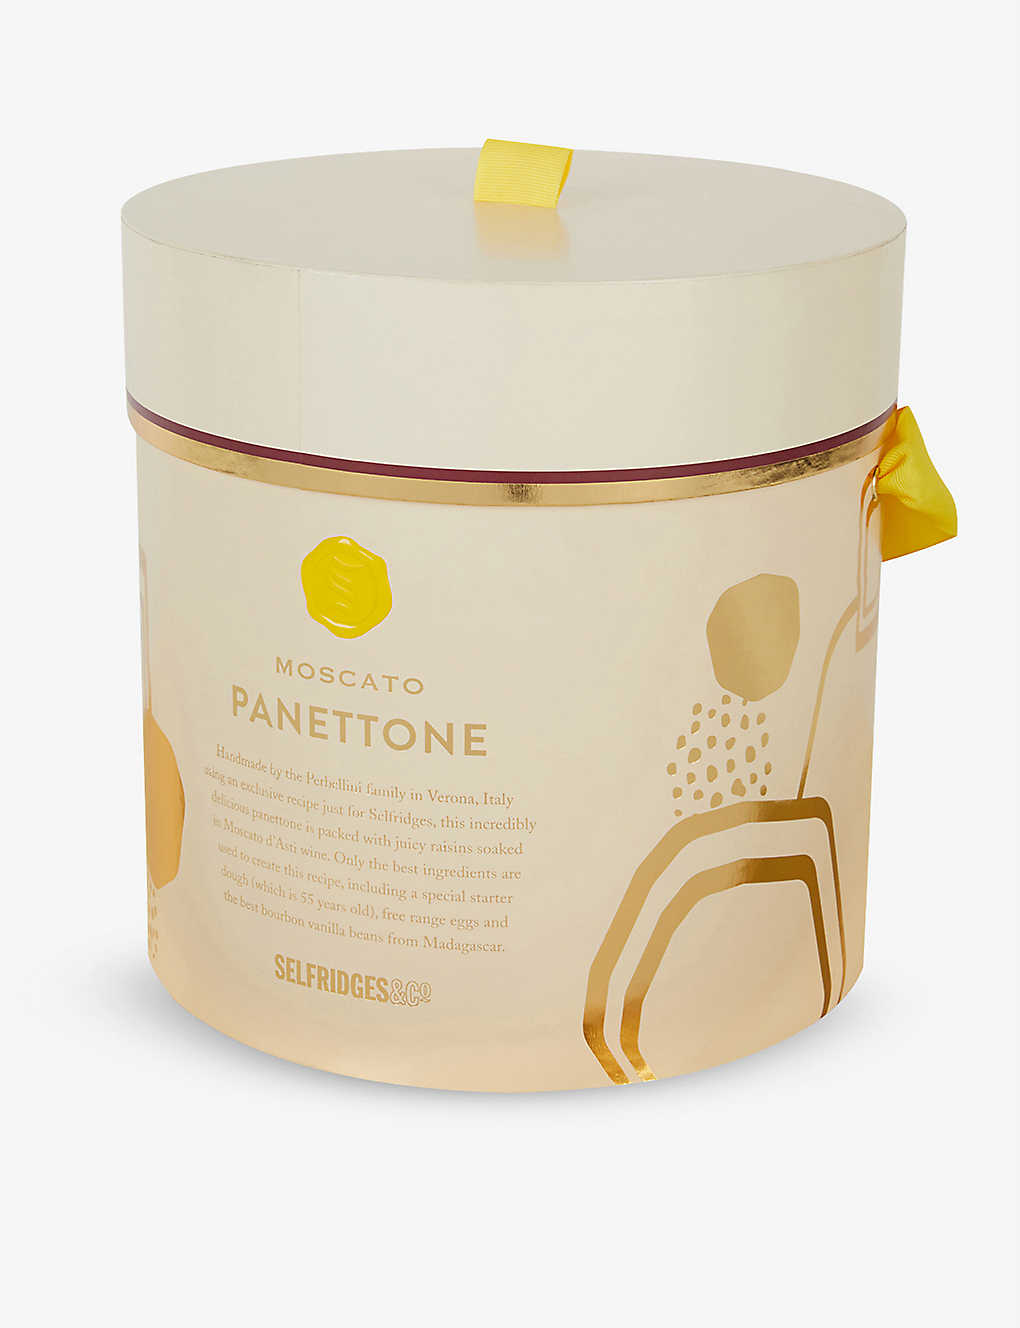 SELFRIDGES SELECTION: Moscato Panettone 950g